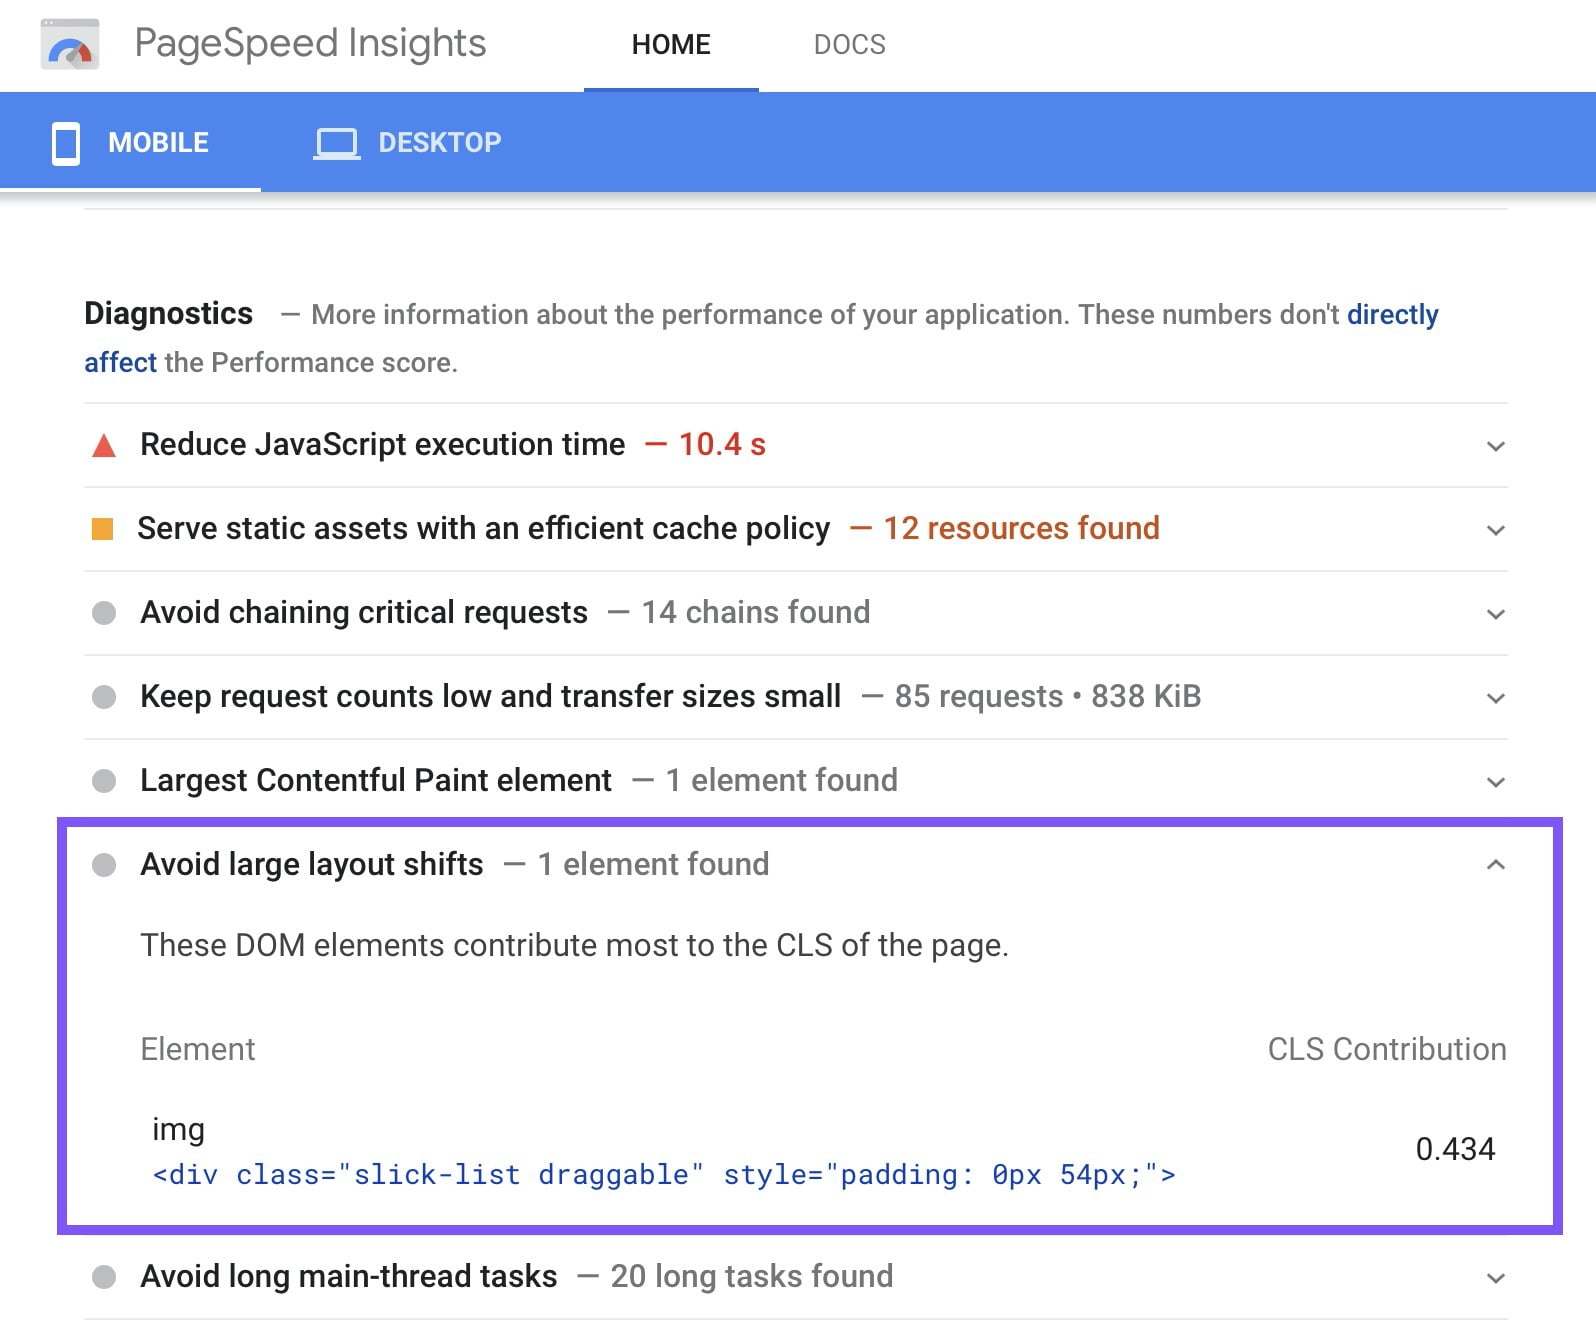 Avoid Large Layout Shifts - PageSpeed Insights